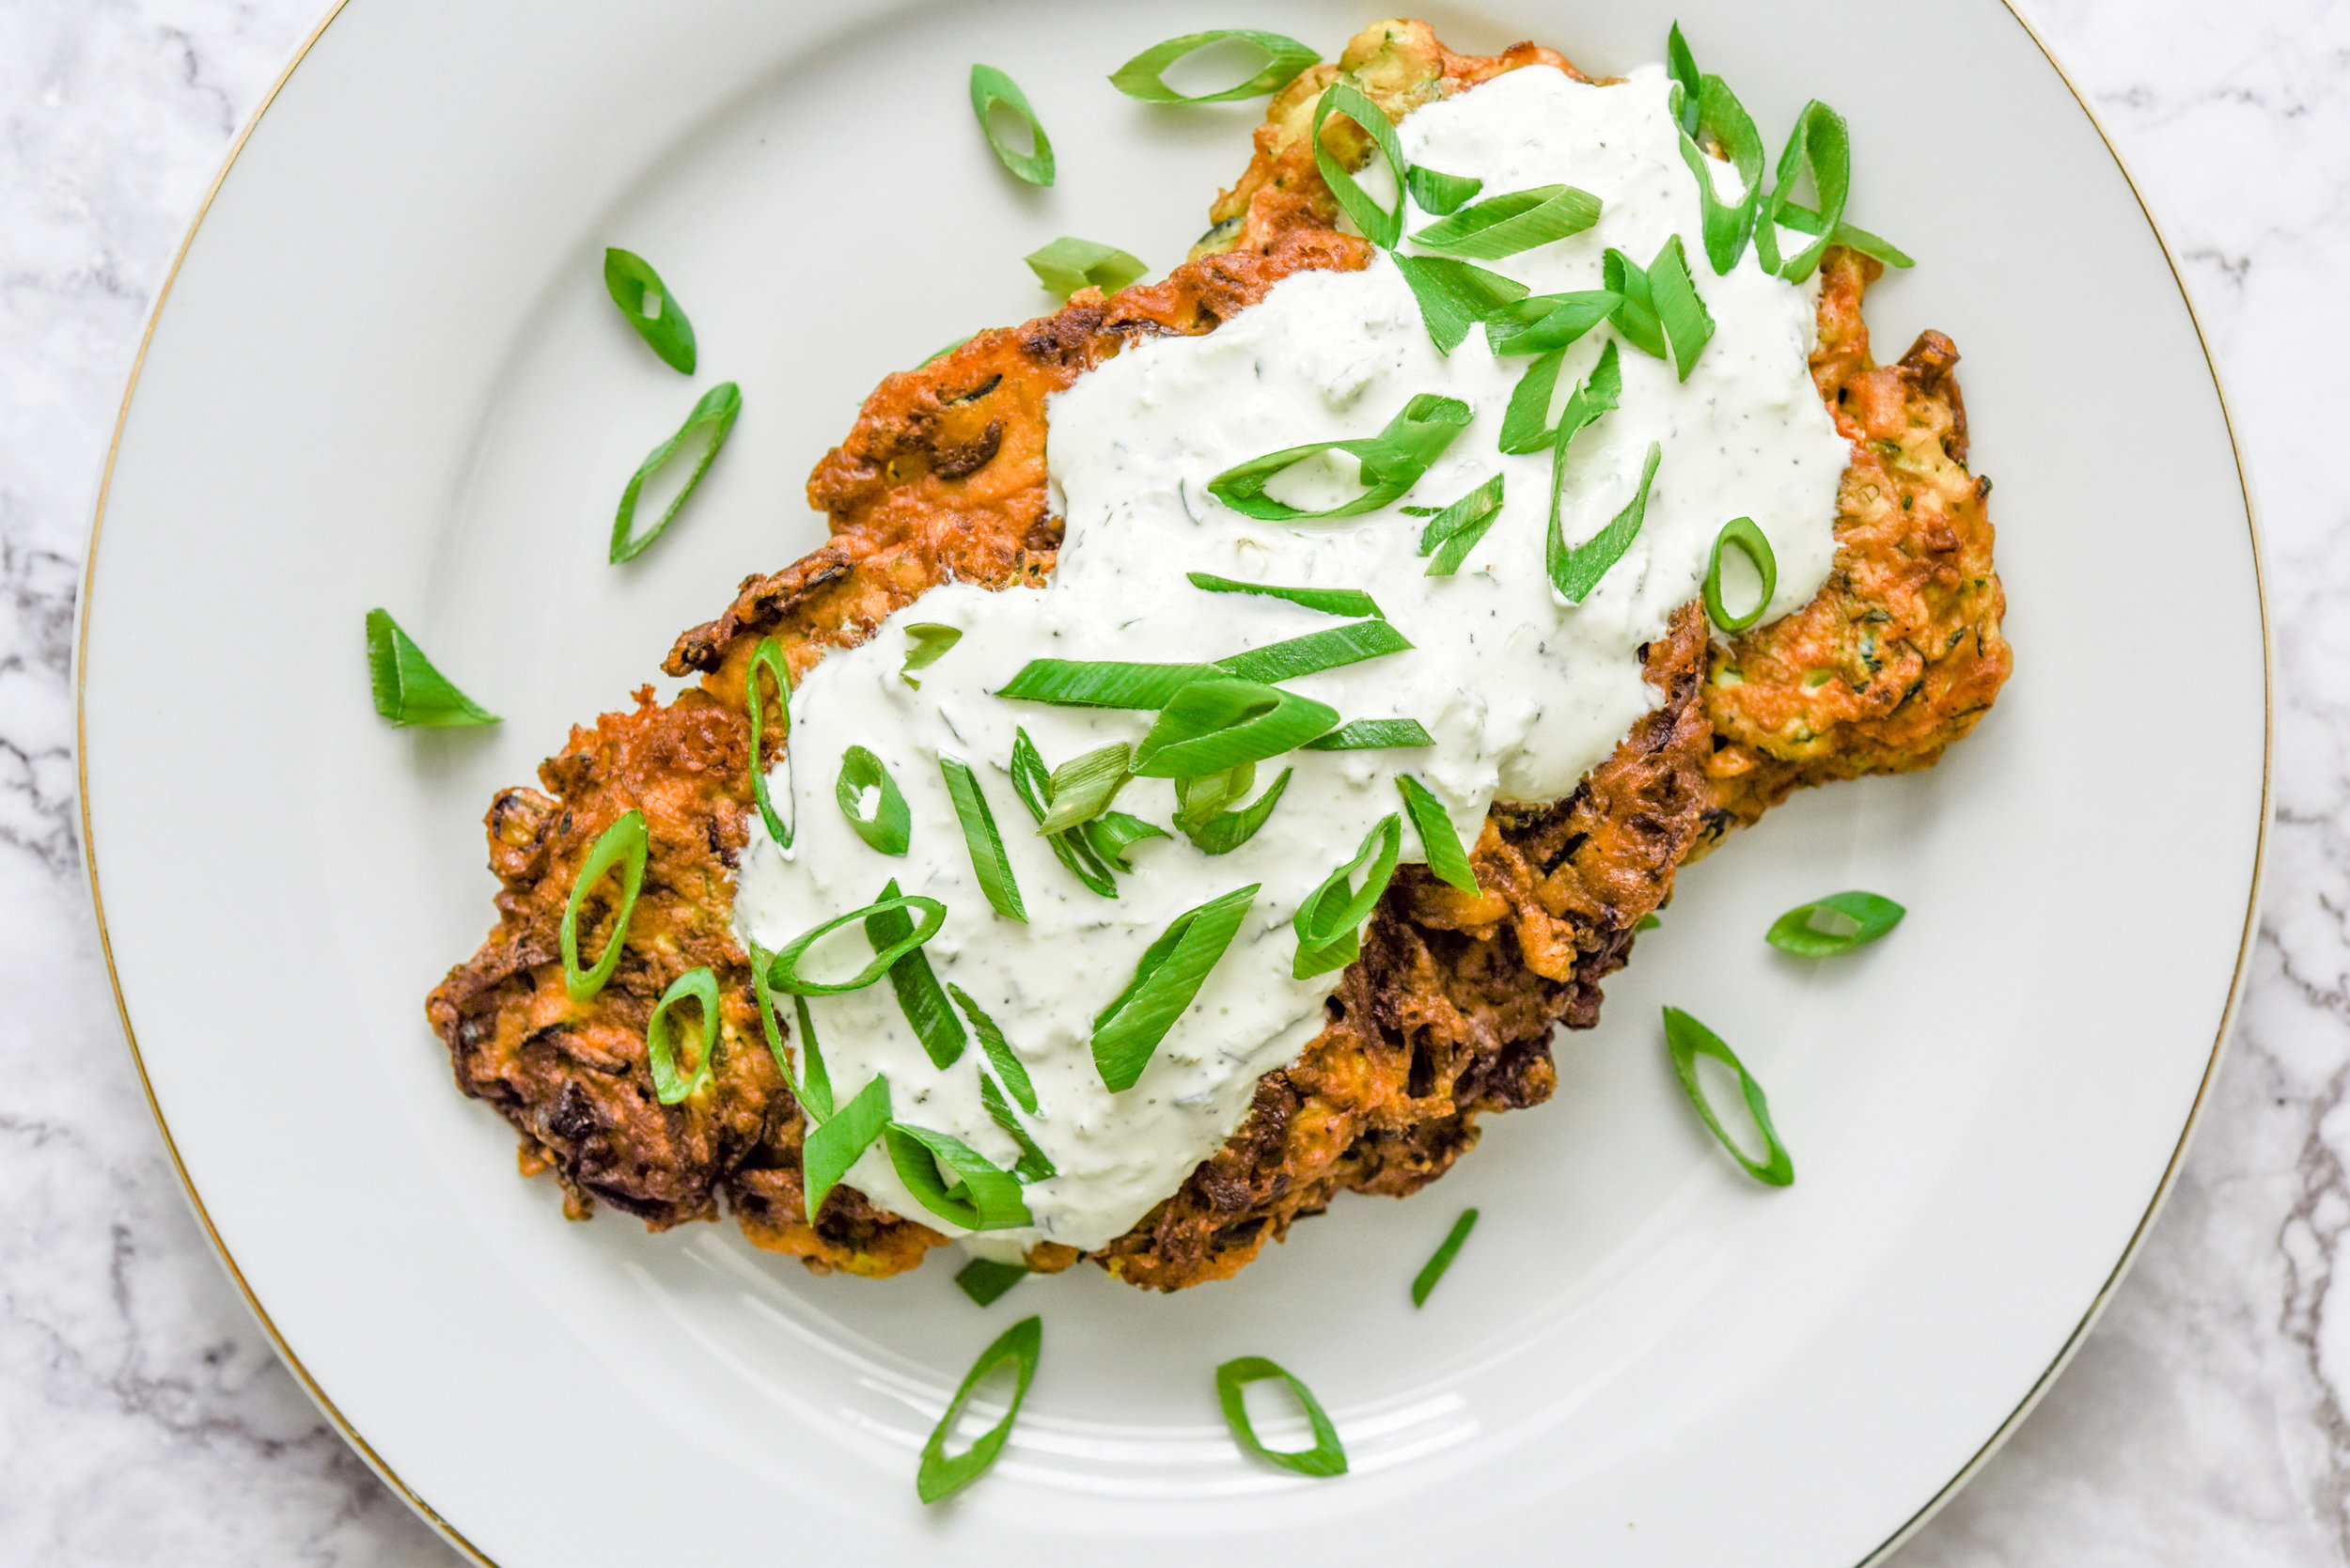 Mucver with tzatziki and scallions.